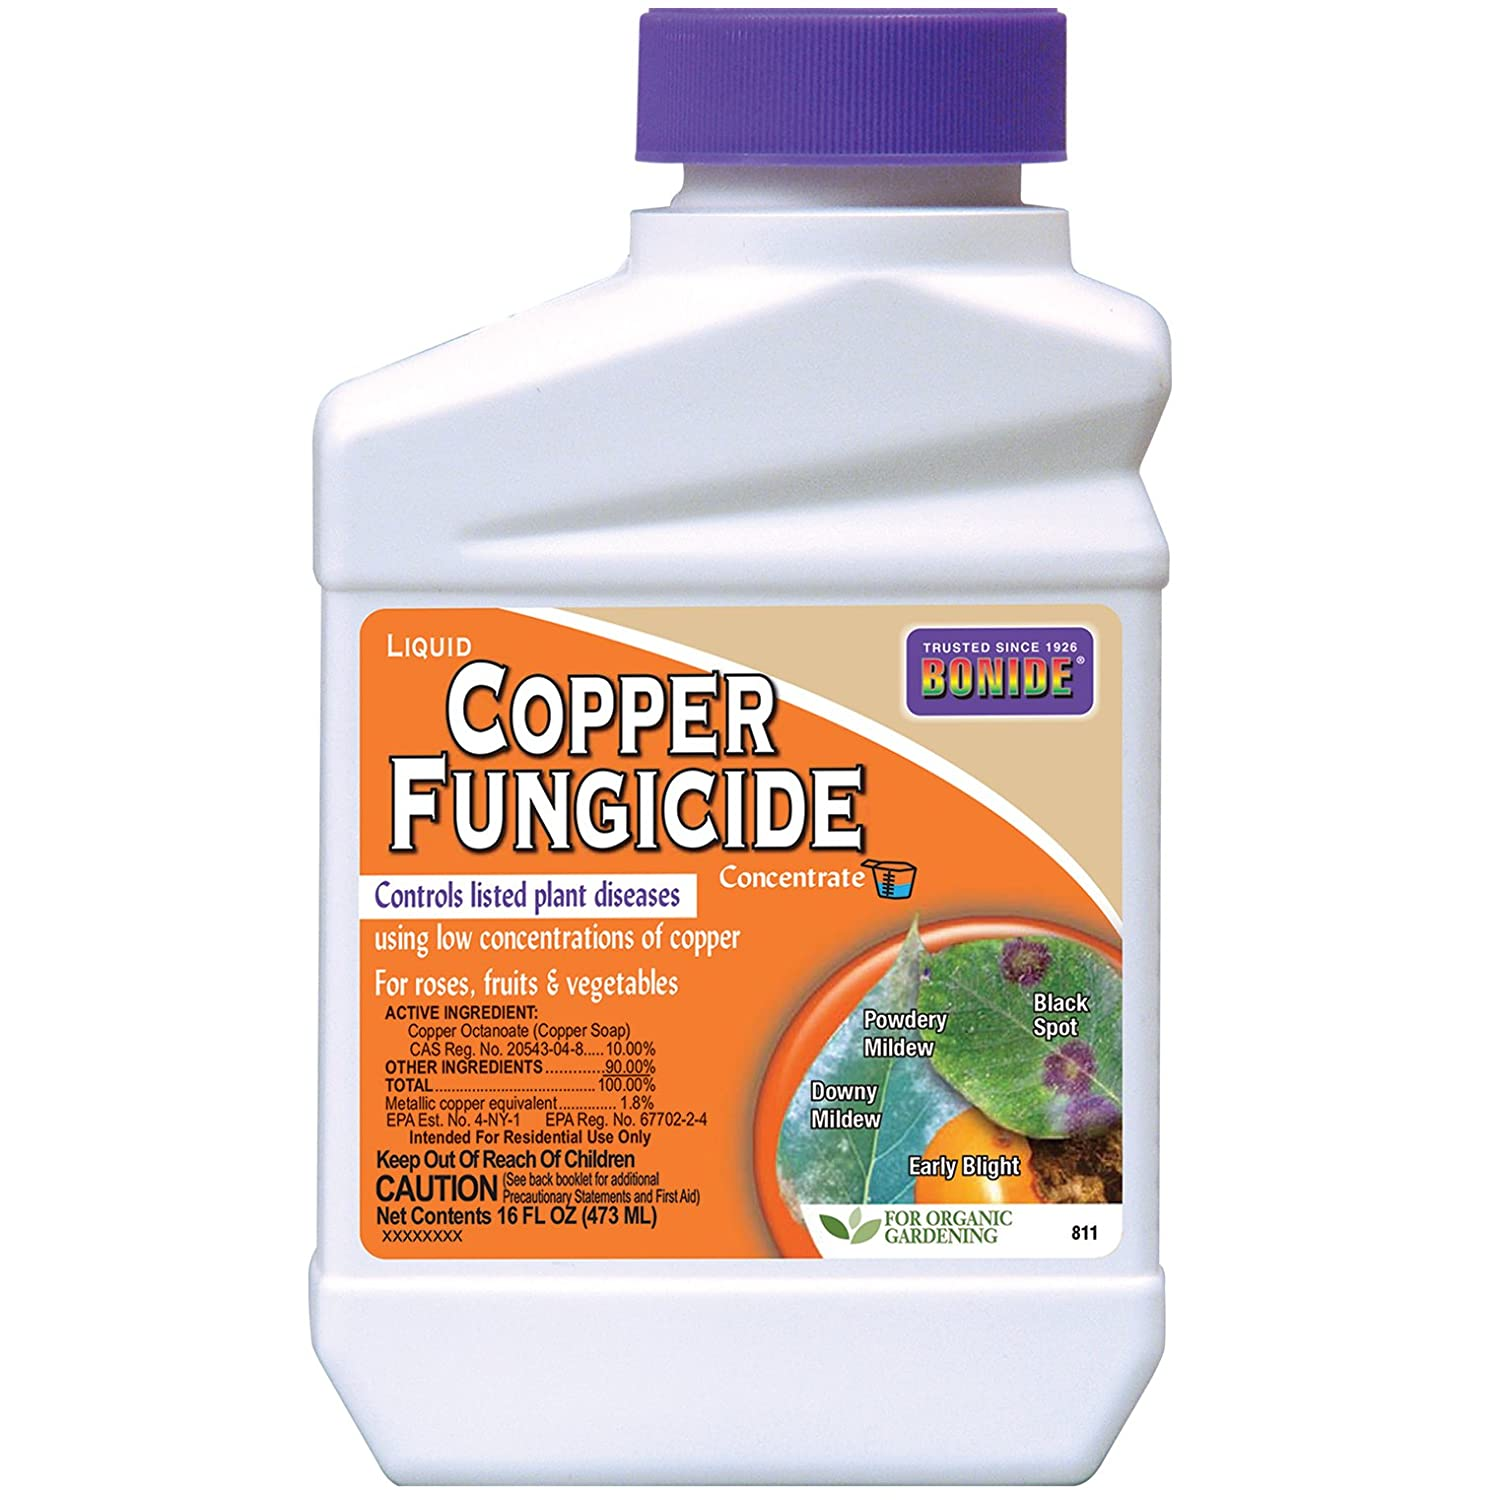 Bonide 811 Copper 4E Fungicide 16oz